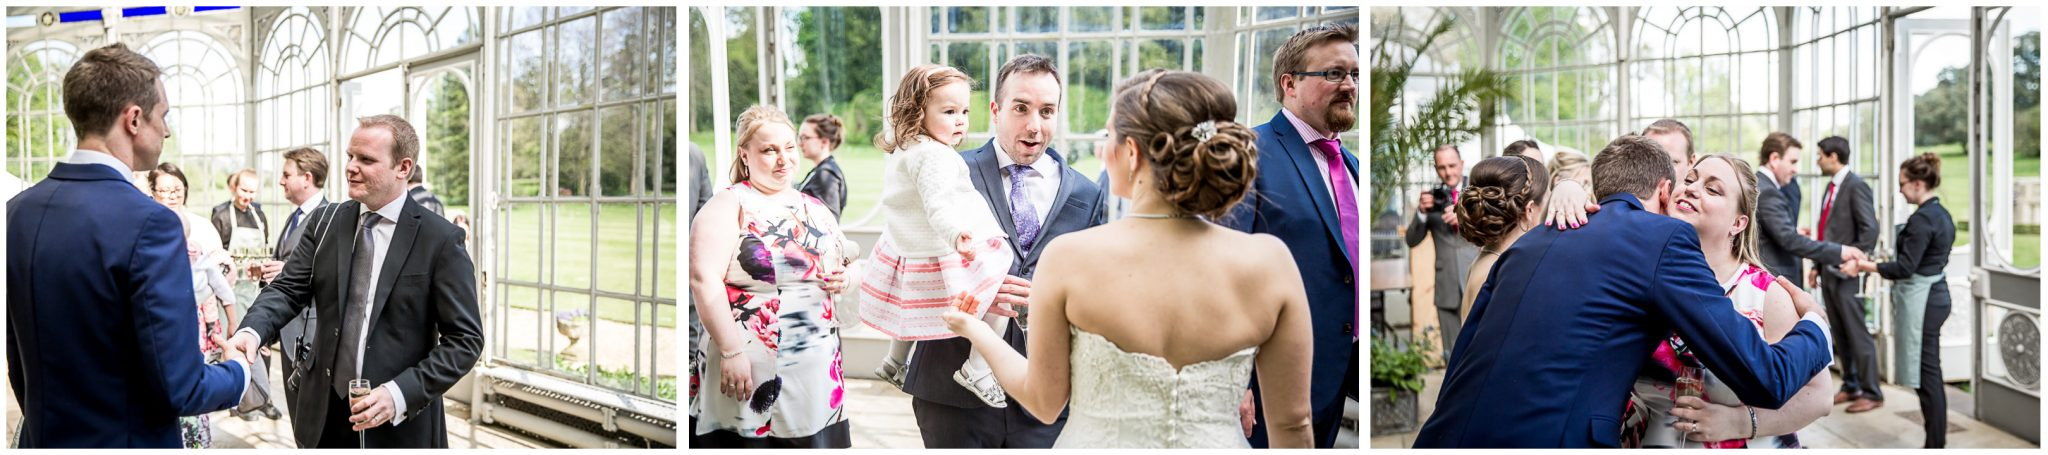 Avington Park wedding photography receiving line in conservatory